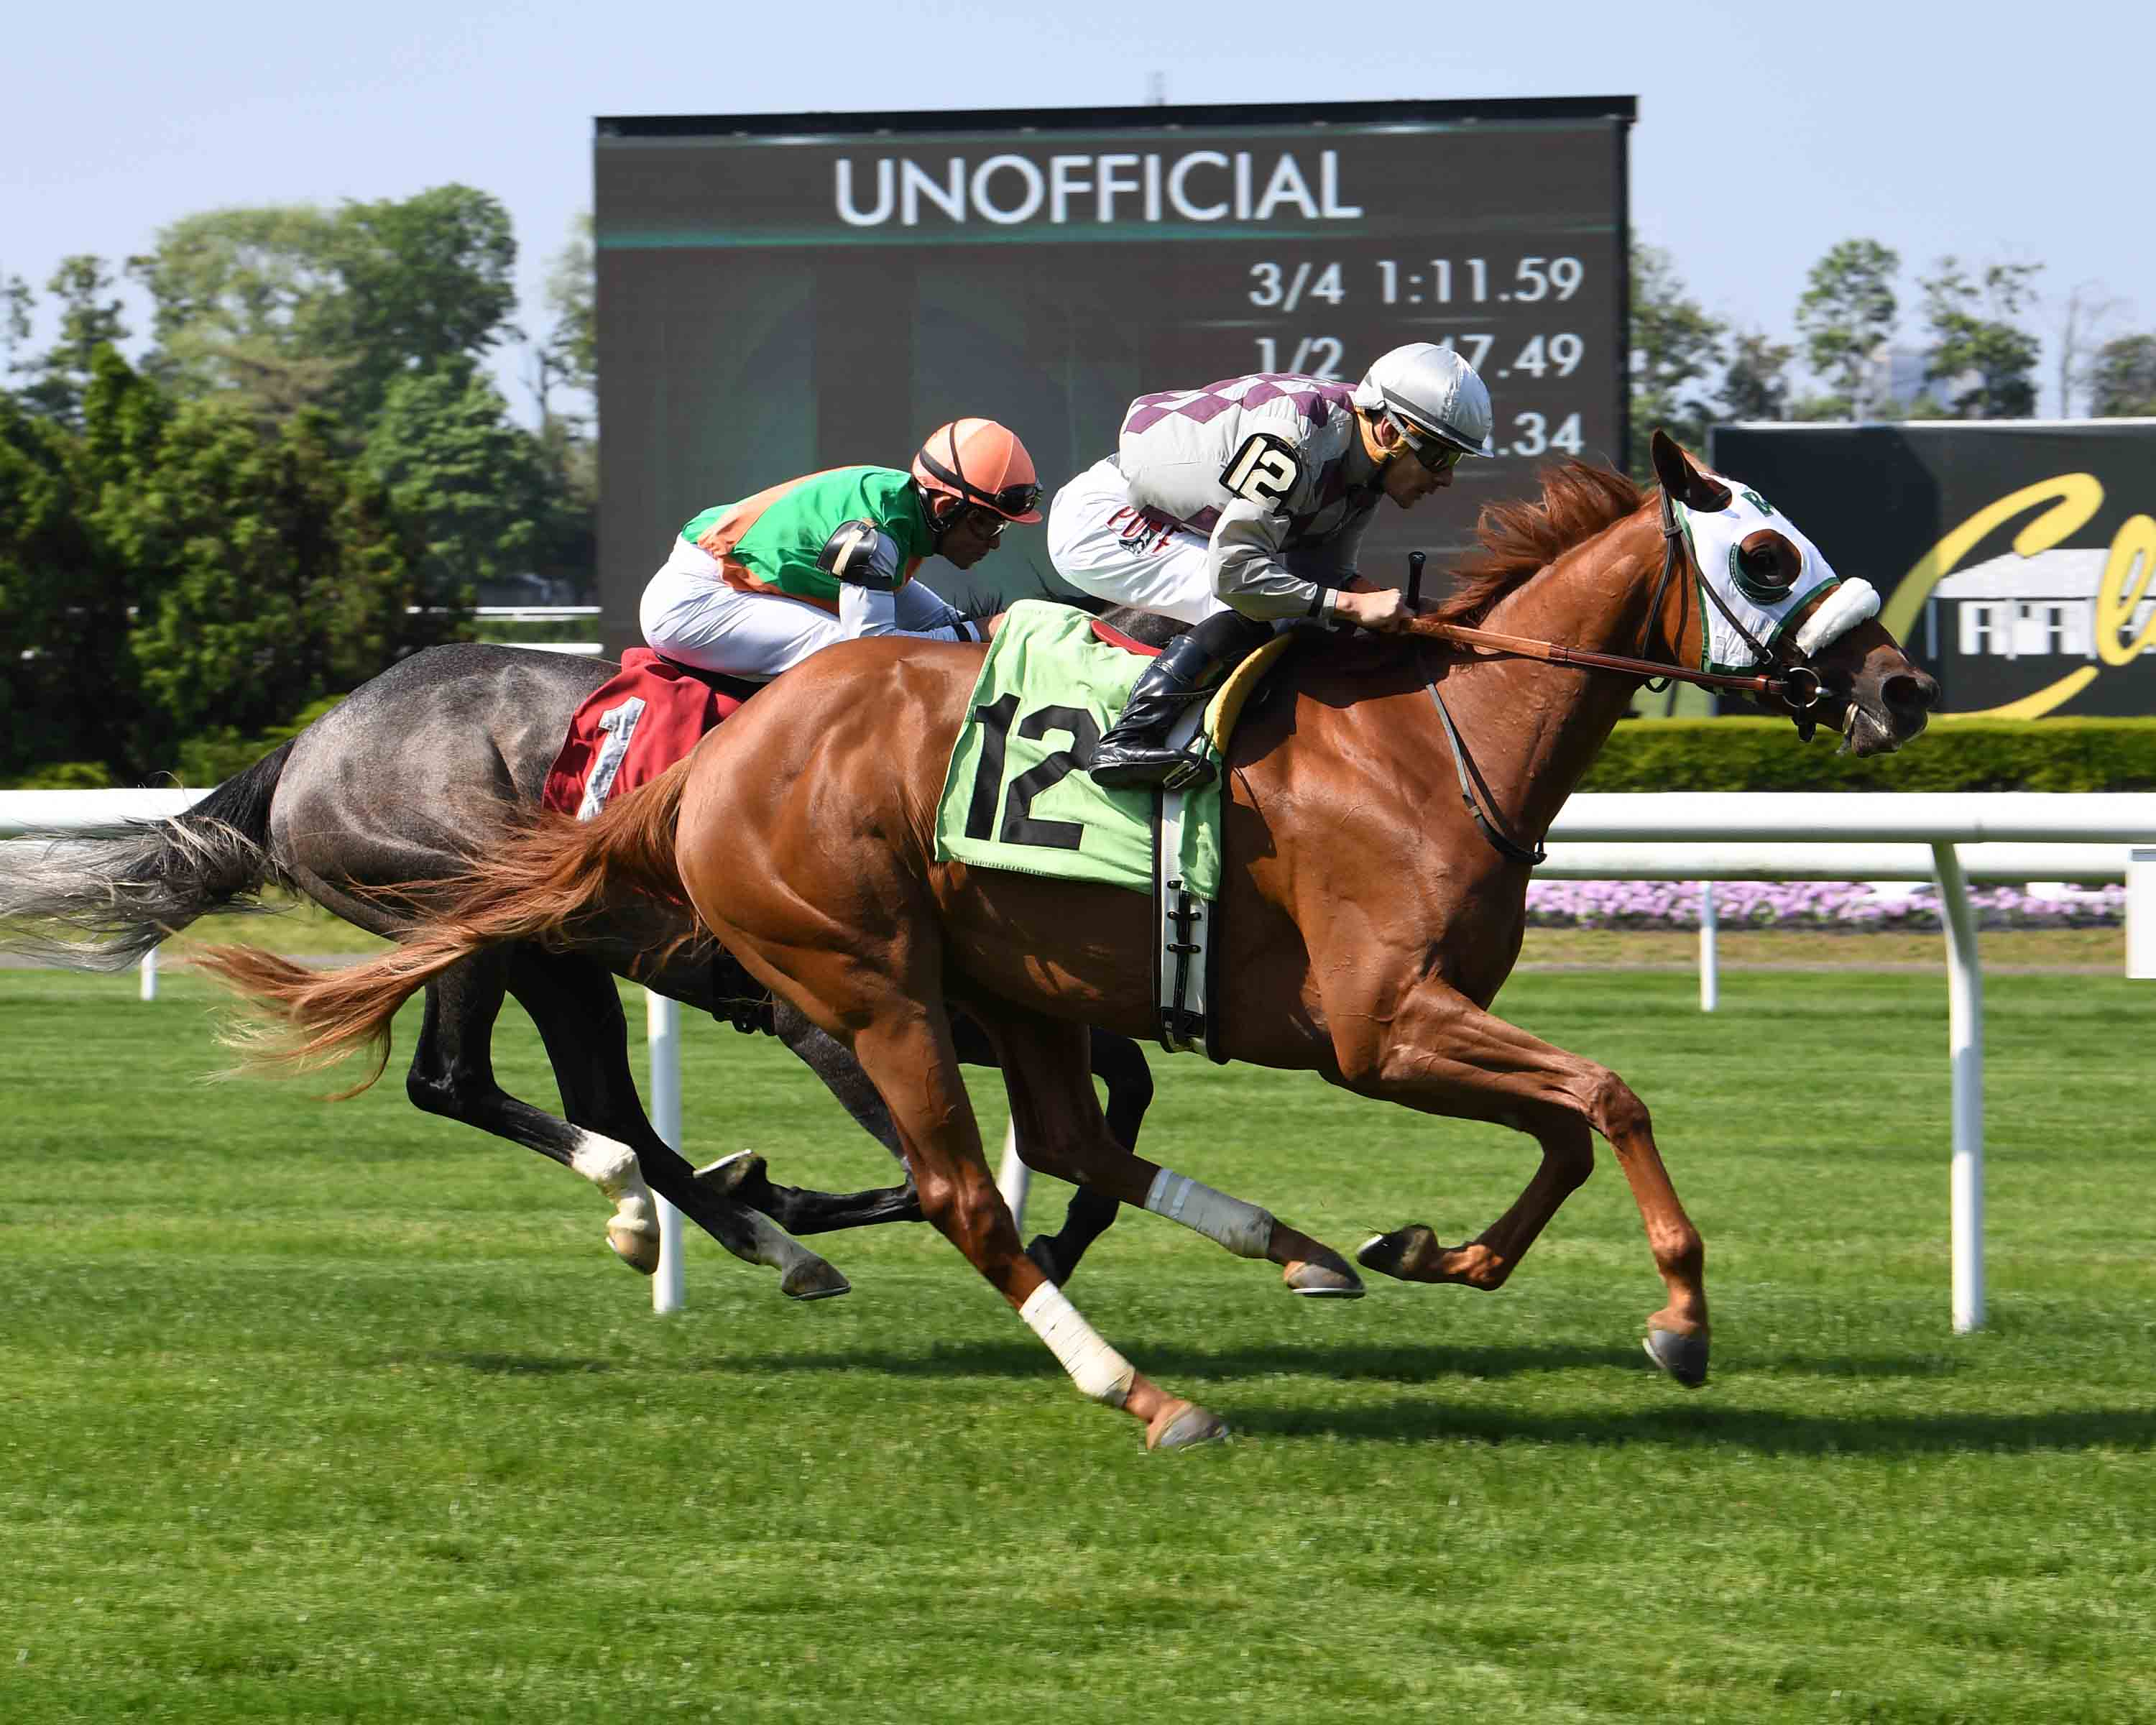 Bill Heller S New York Breds At The Races May 16 To 19 New York